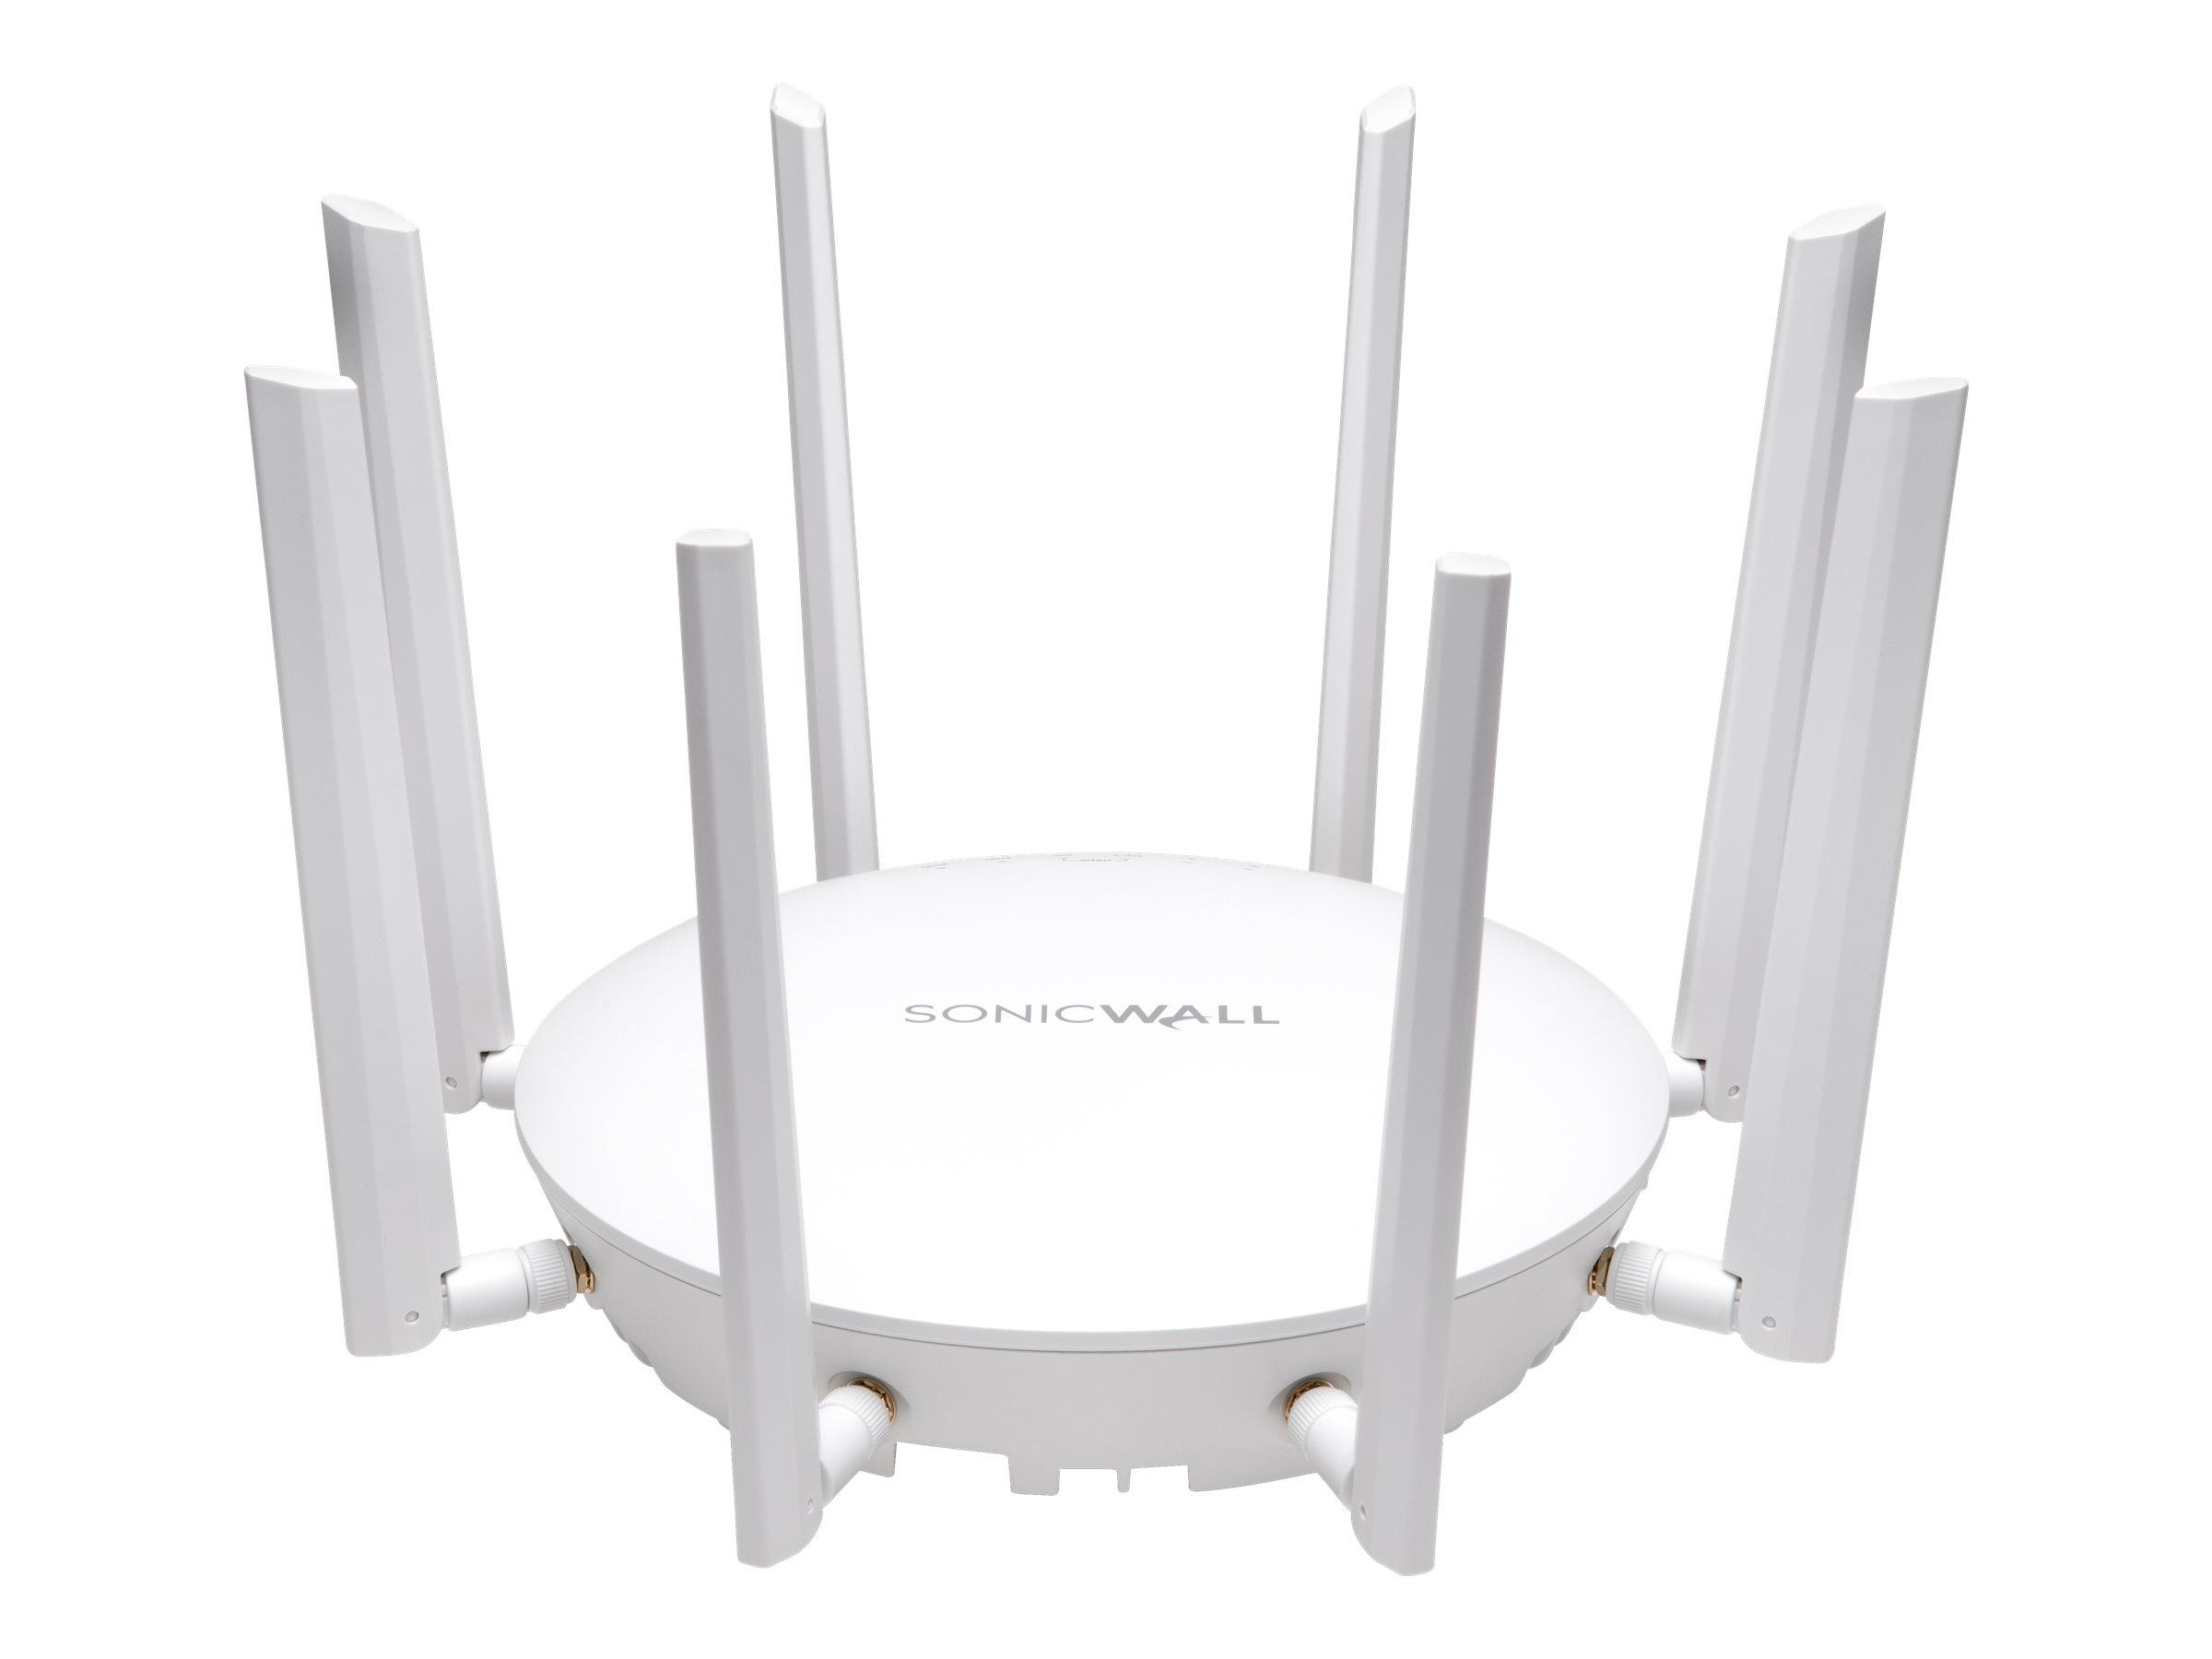 SonicWall SonicWave 432e - wireless access point - with 1 year Advanced Secure Cloud WiFi Management and Support